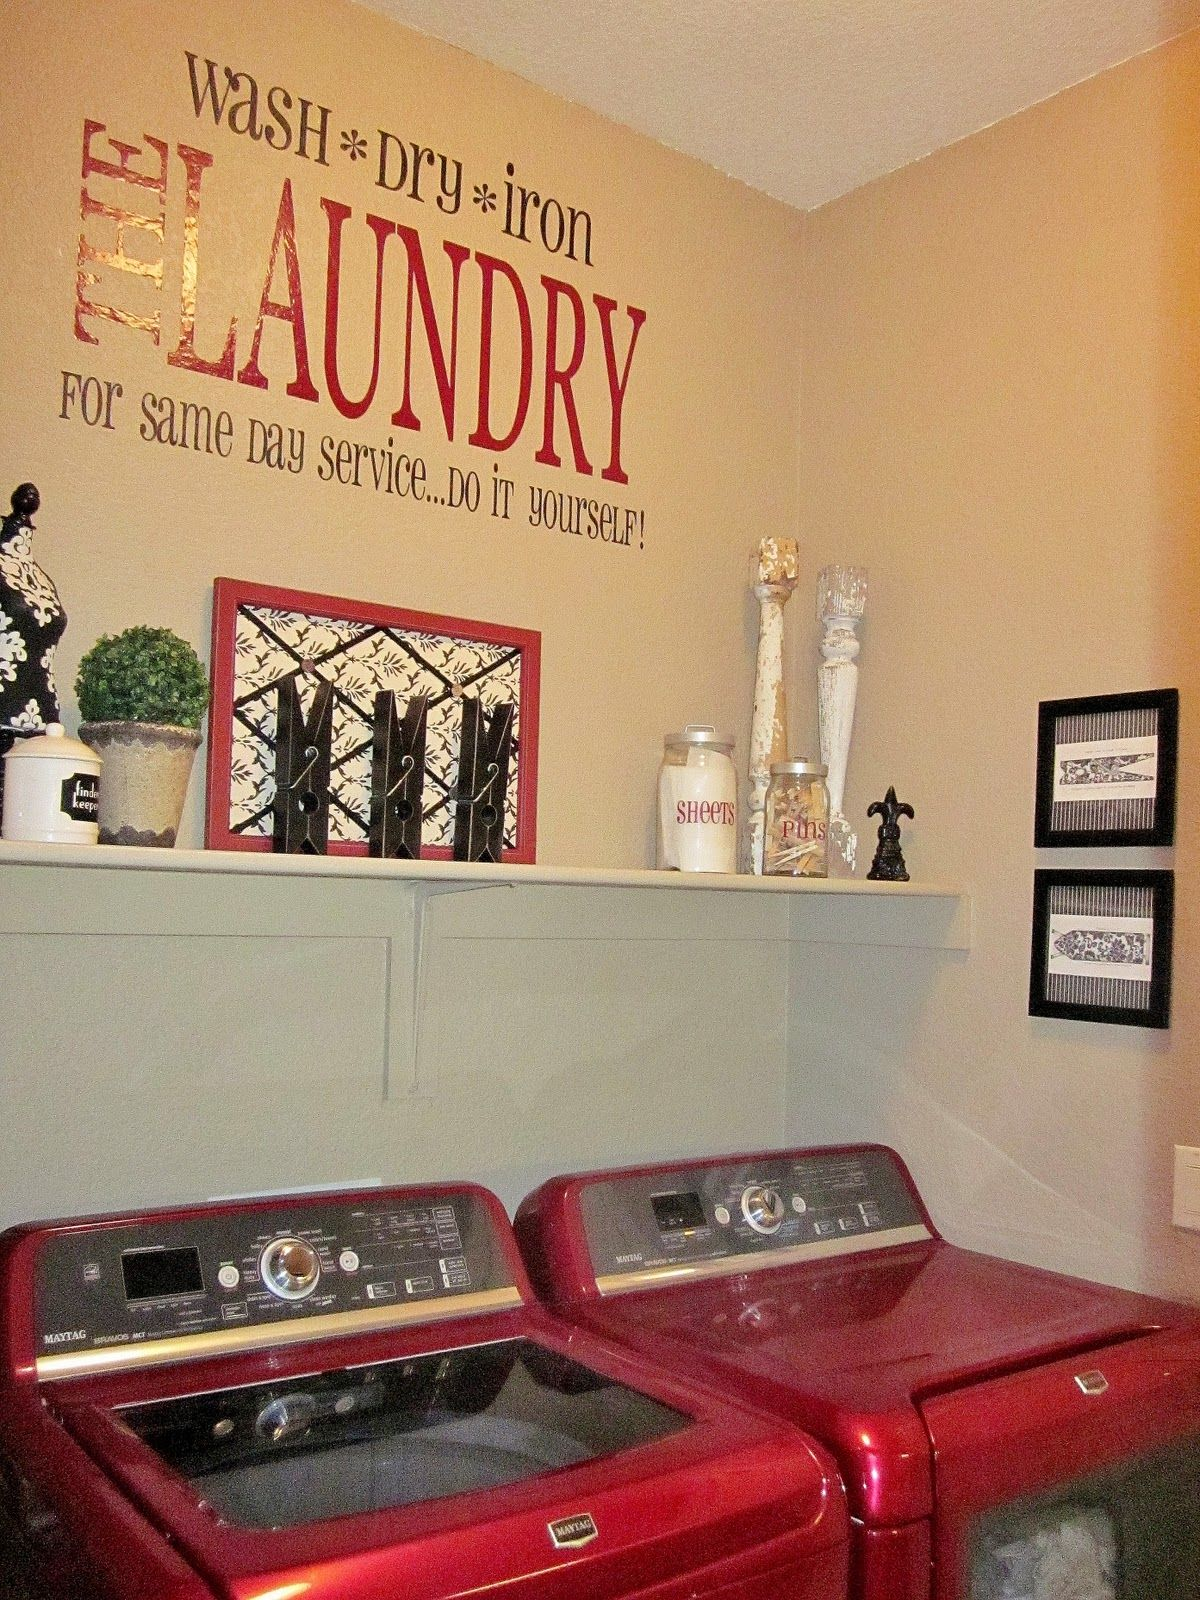 Decorations For A Room Pictures Of Laundry Rooms Laundry Room Decorations On No Budget